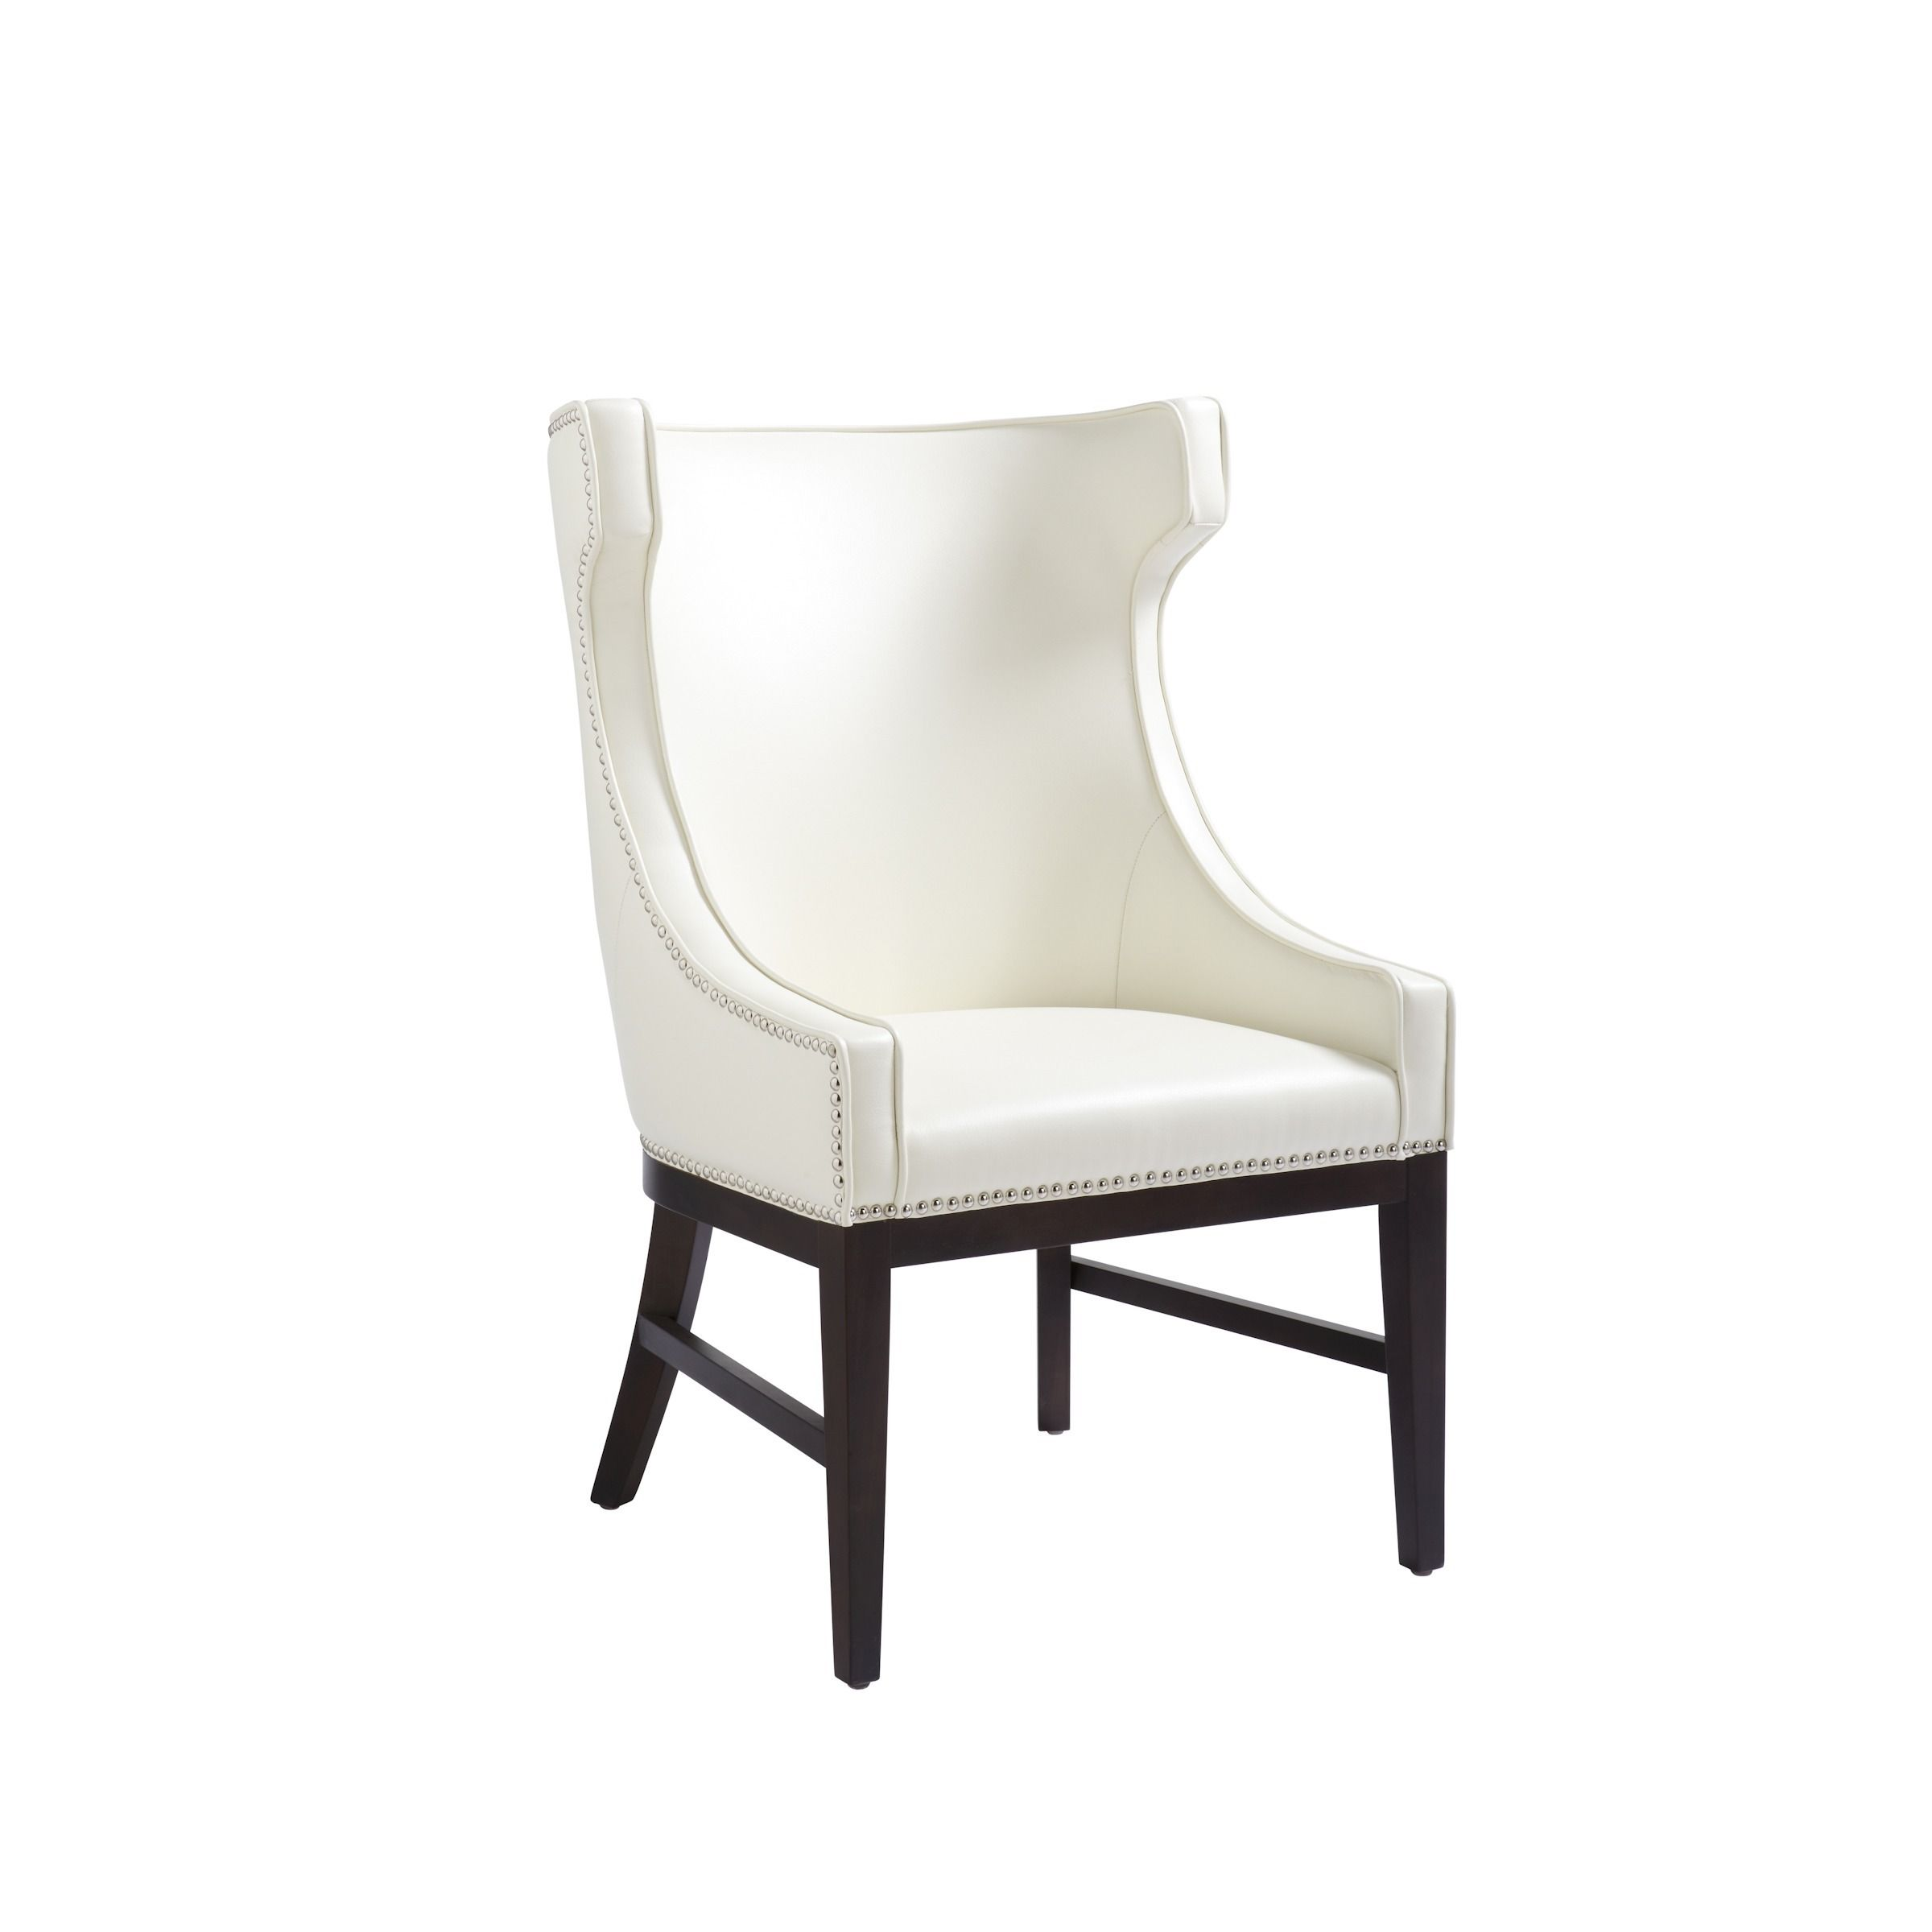 This dramatic bonded leather, high back winged chair can be used as a dining or occasional chair. The piece features silver nail head trimming with an espresso-finished frame and legs.